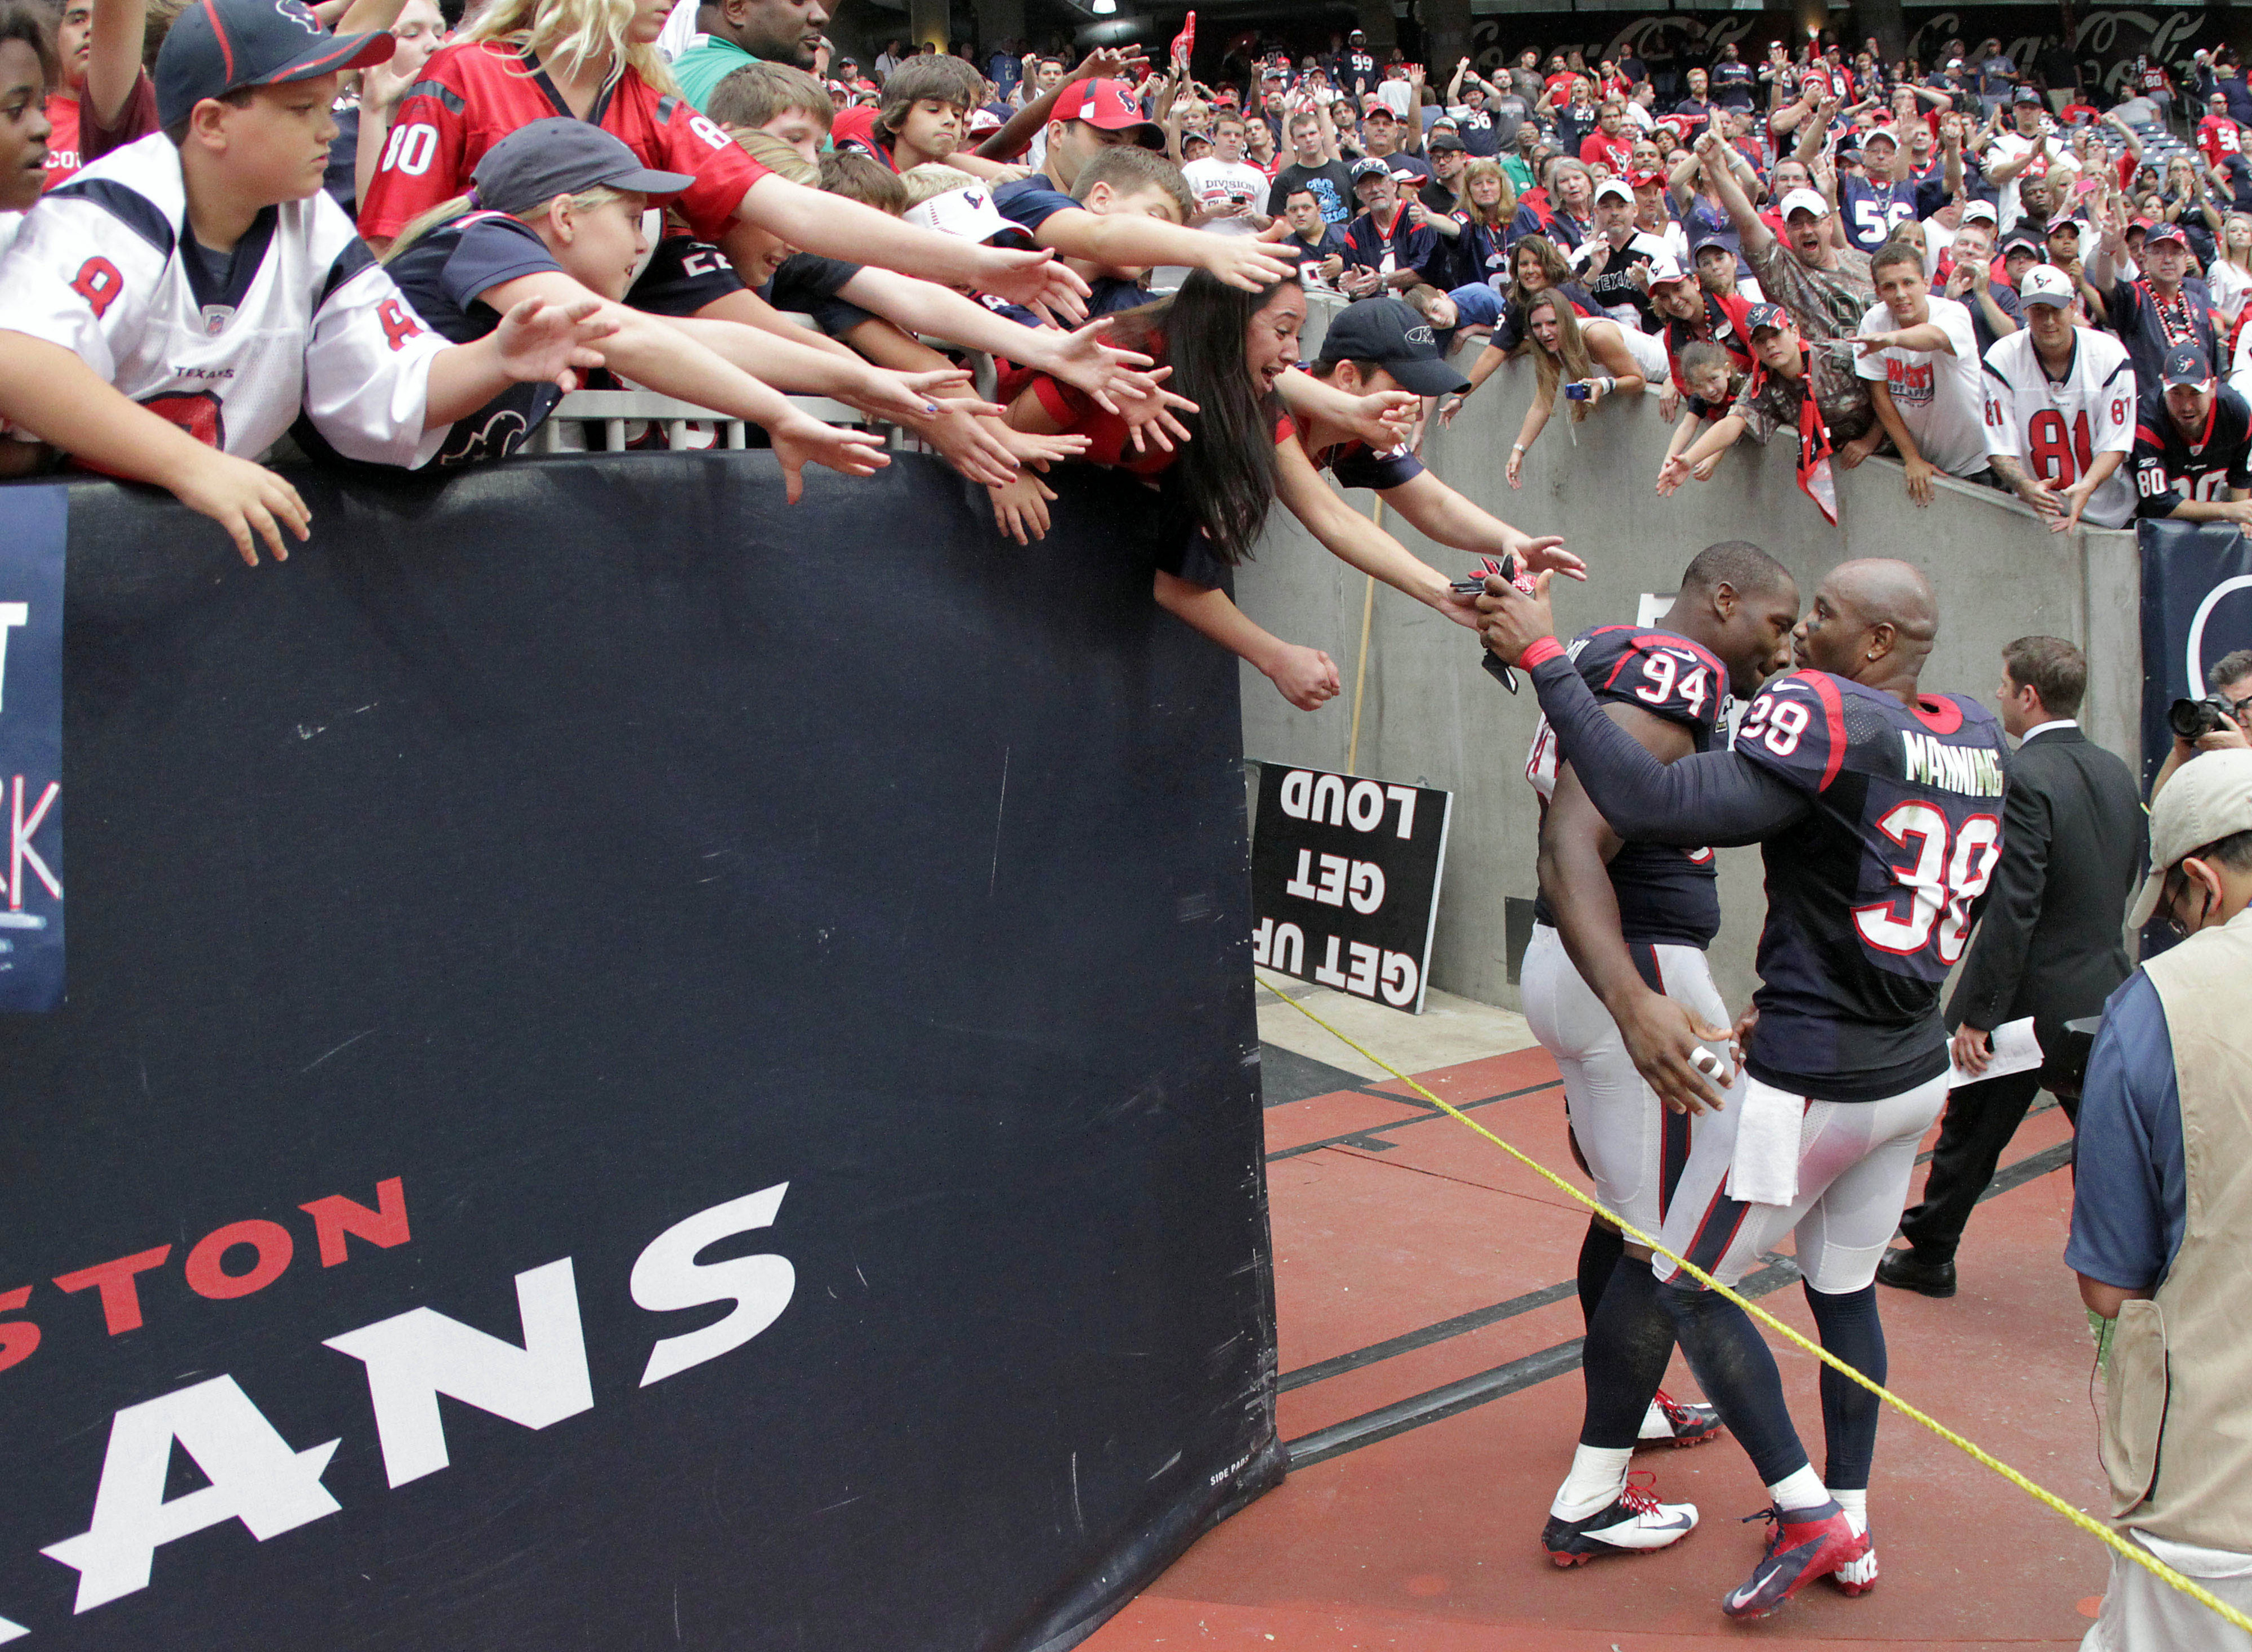 Danieal Manning, celebrating with fans after the last Texans' victory over Tennessee.